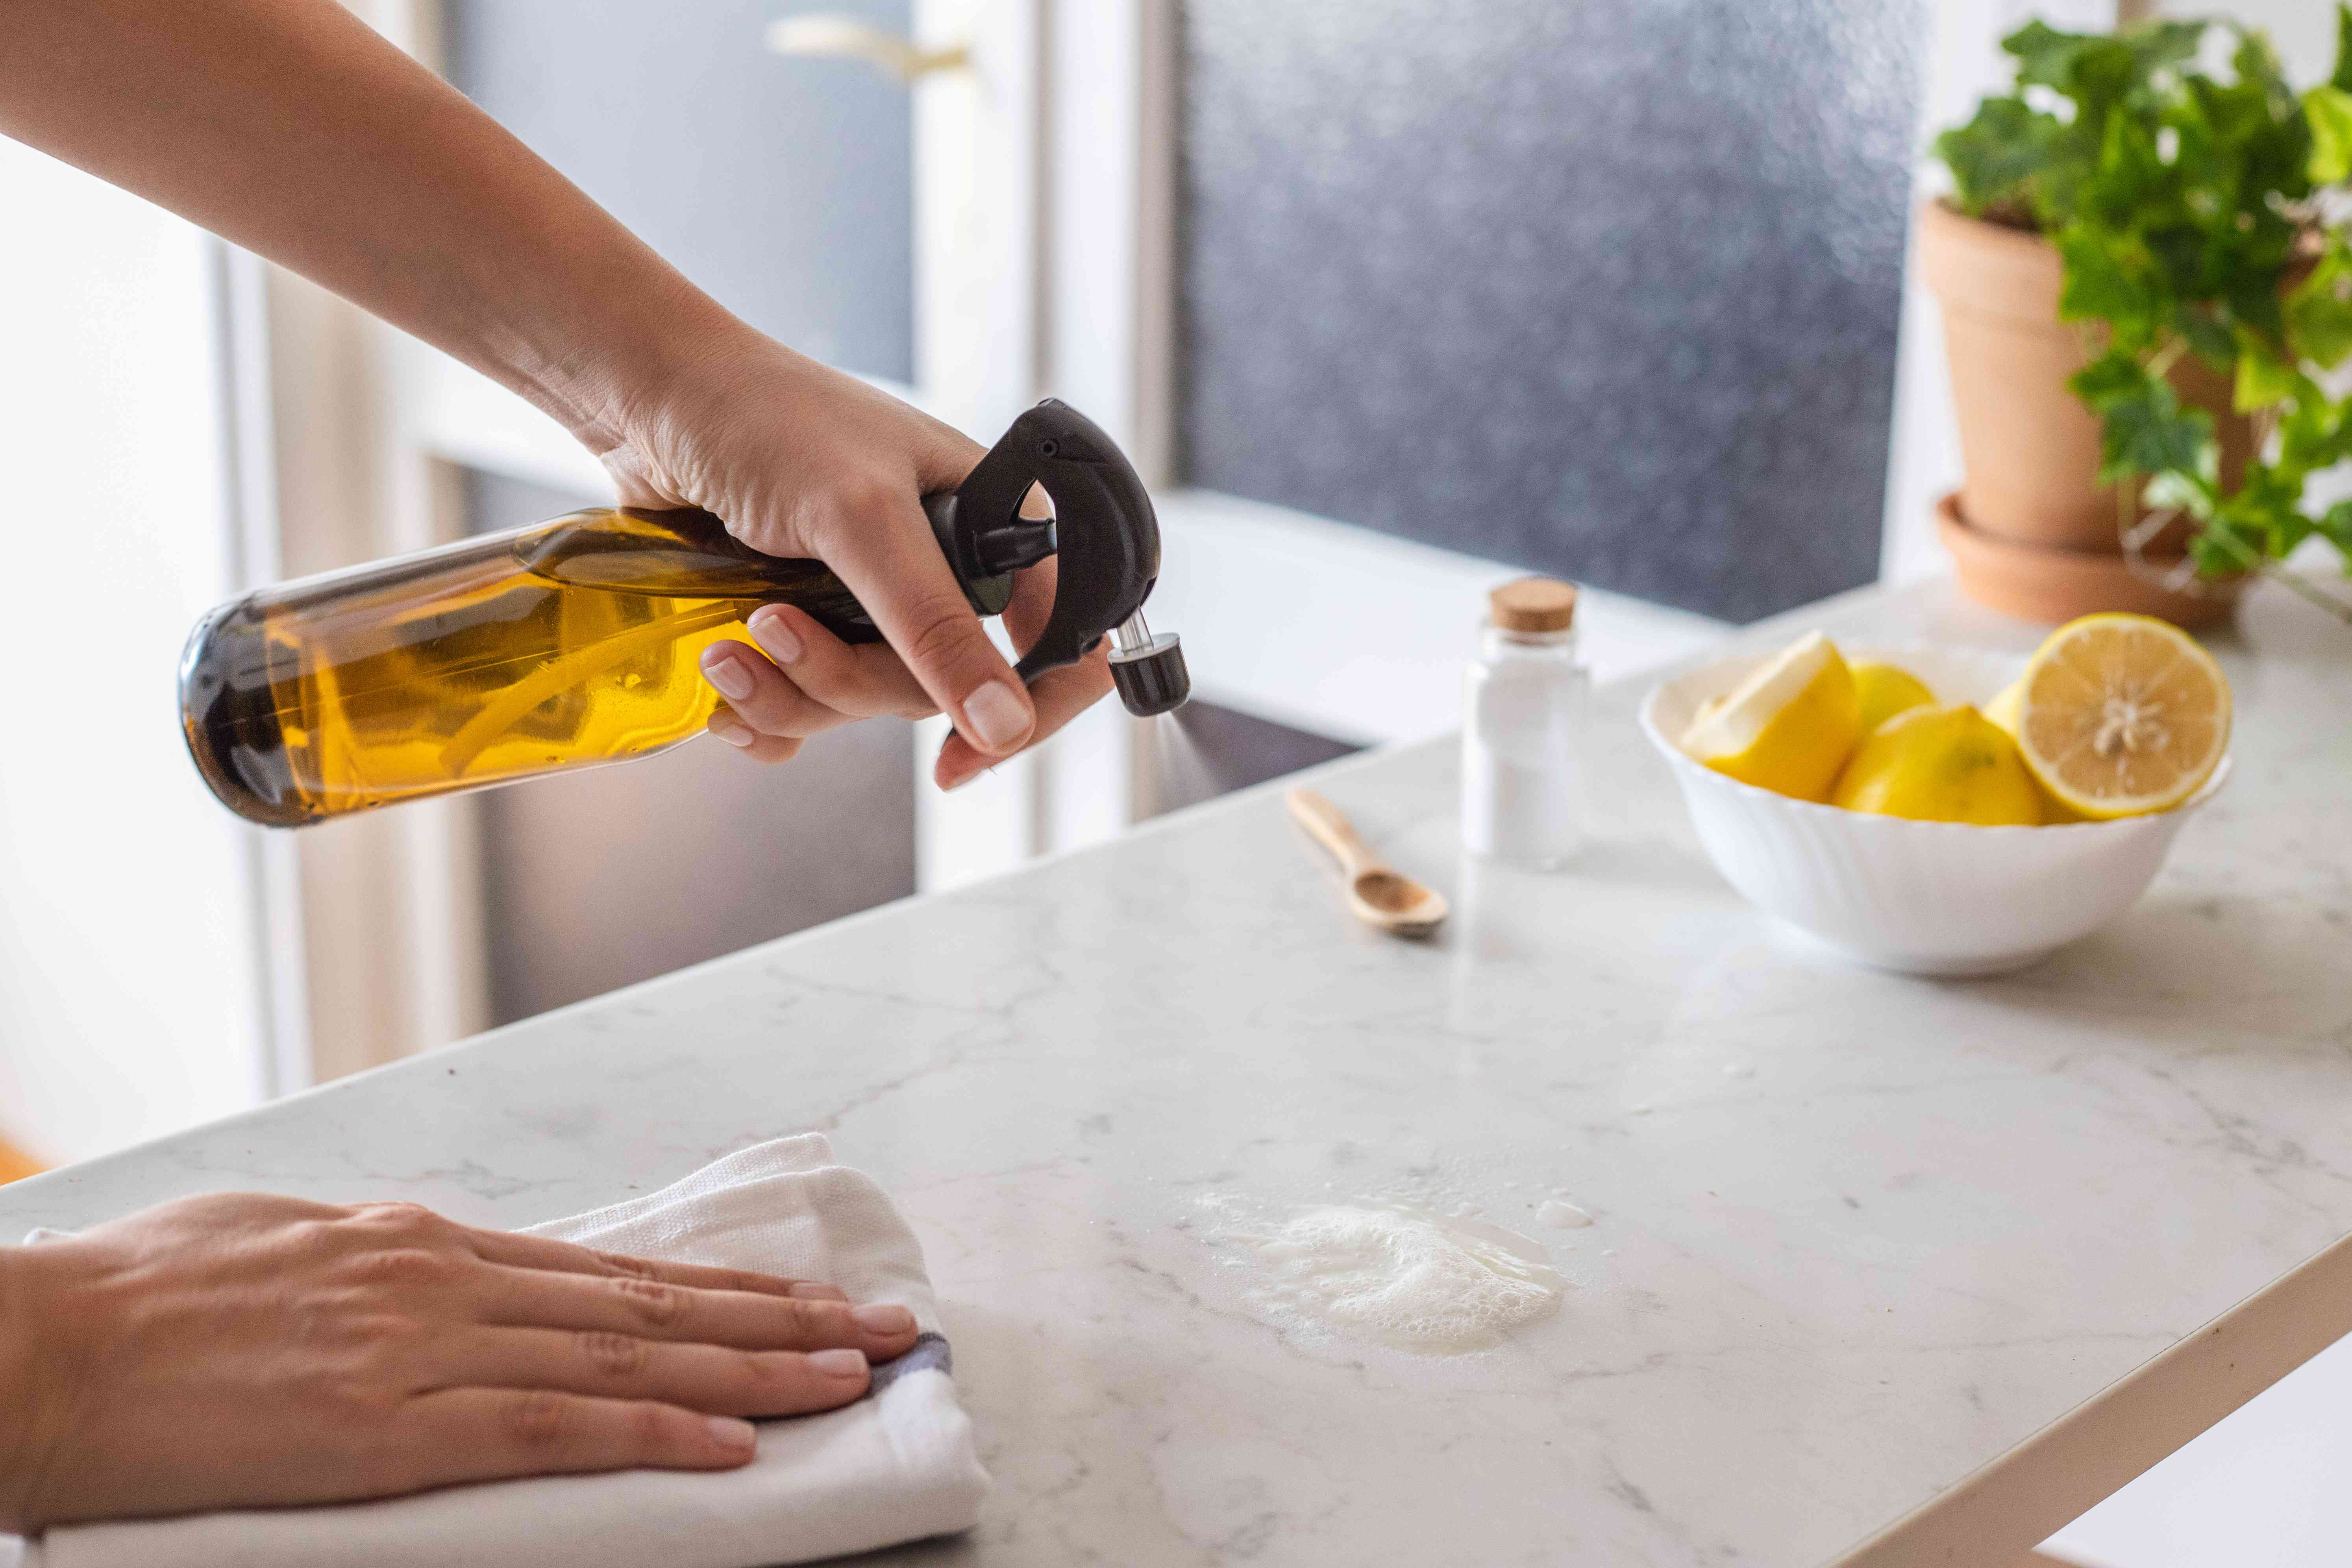 person sprays salt pile on marble countertop to clean greasy mess with lemons